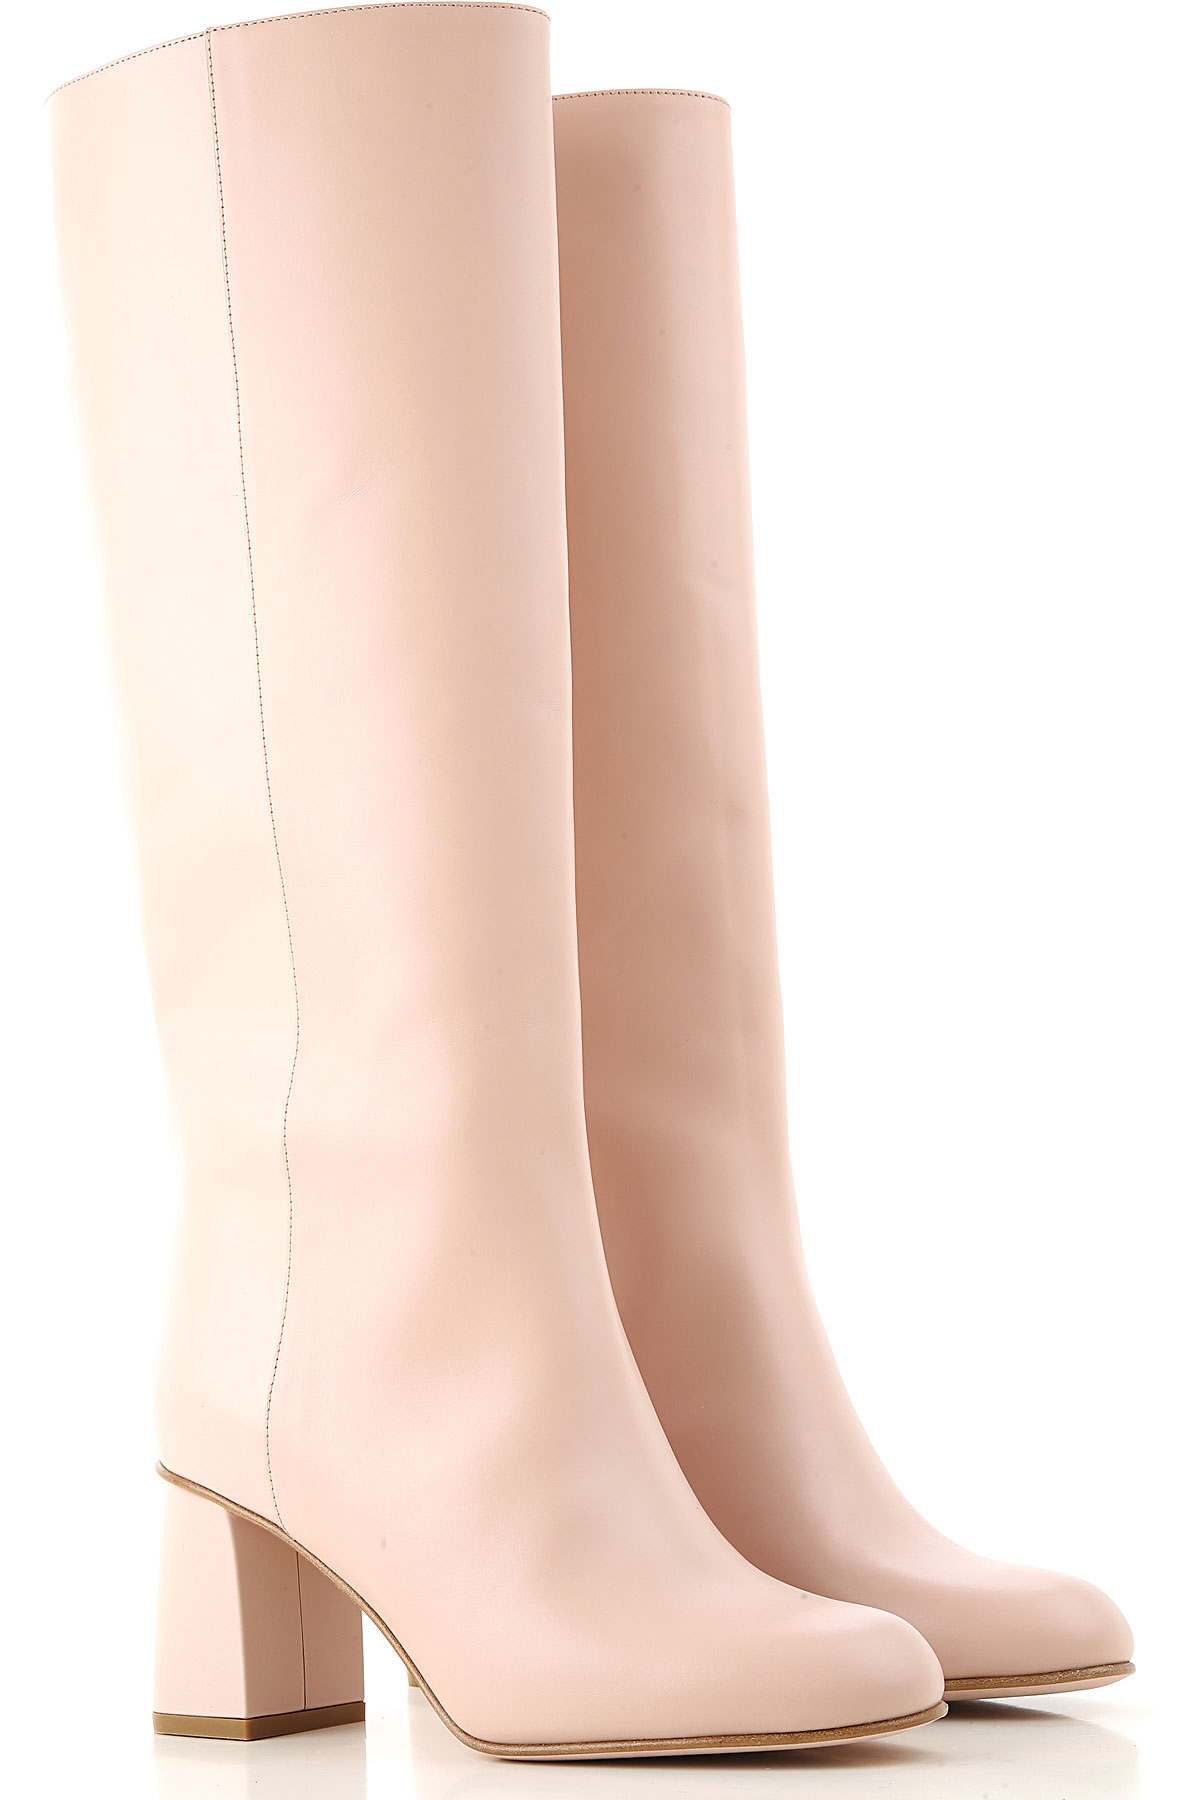 RED Valentino Boots for Women, Booties On Sale, Light Nude, Leather, 2019, 11 9